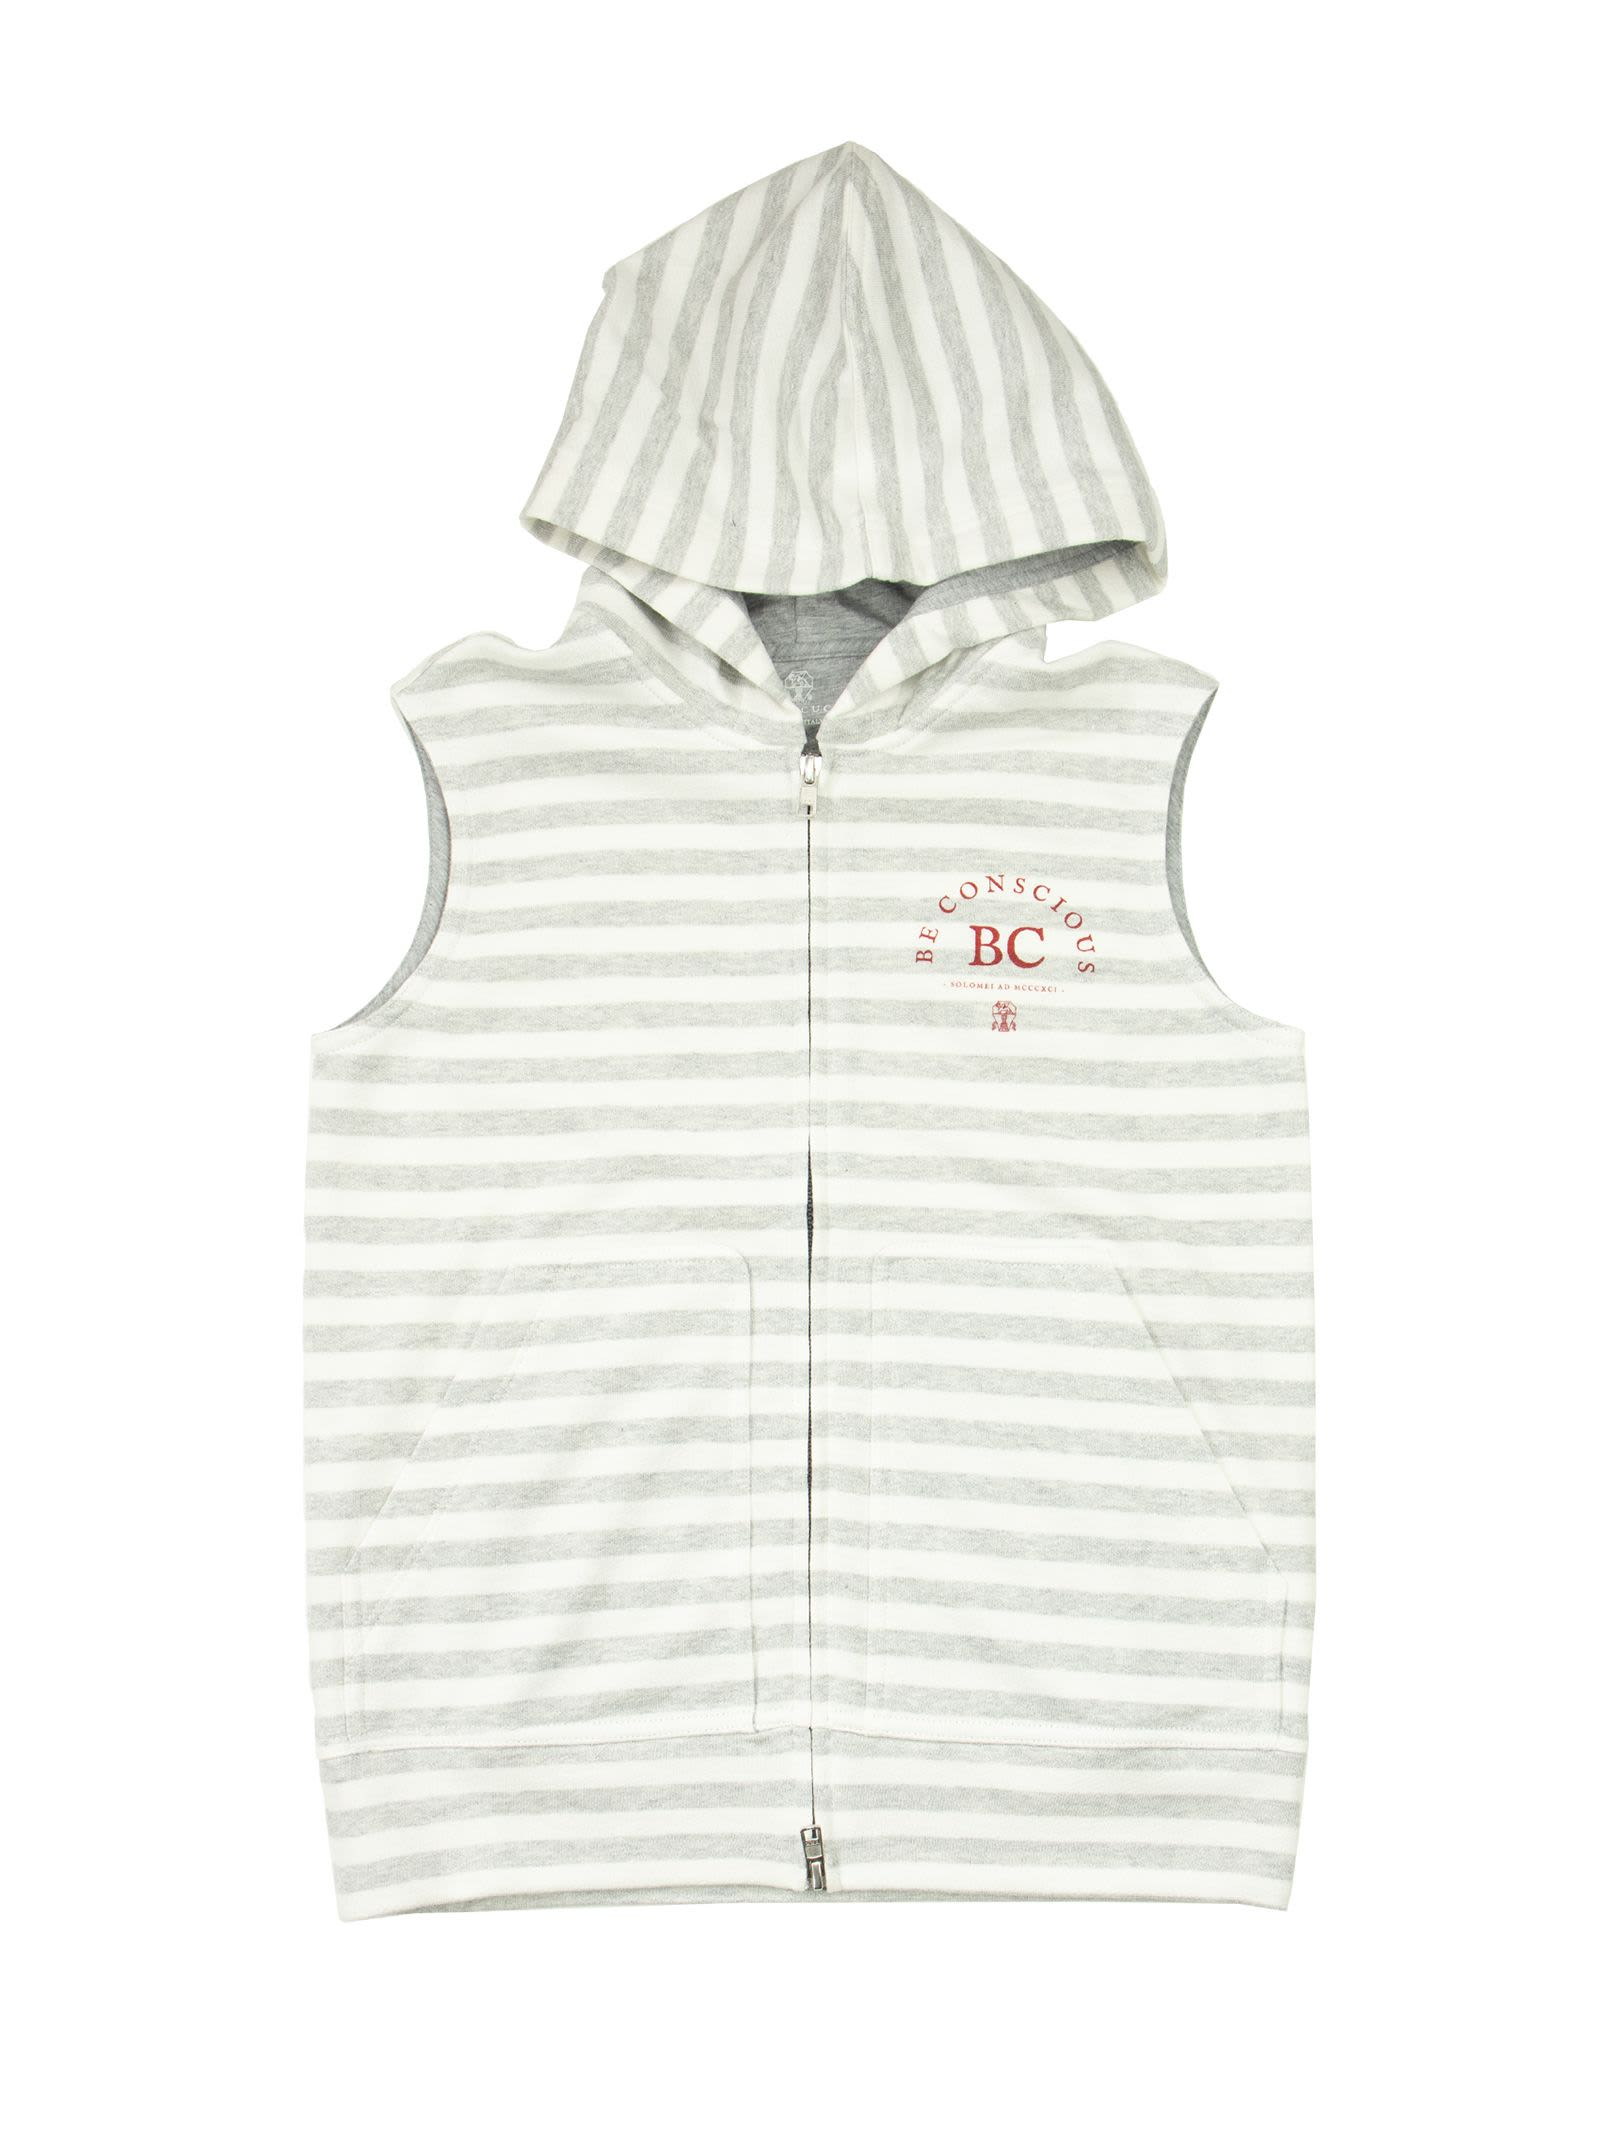 Brunello Cucinelli Linens COTTON AND LINEN STRIPED FRENCH TERRY SLEEVELESS SWEATSHIRT WITH HOOD AND PRINT